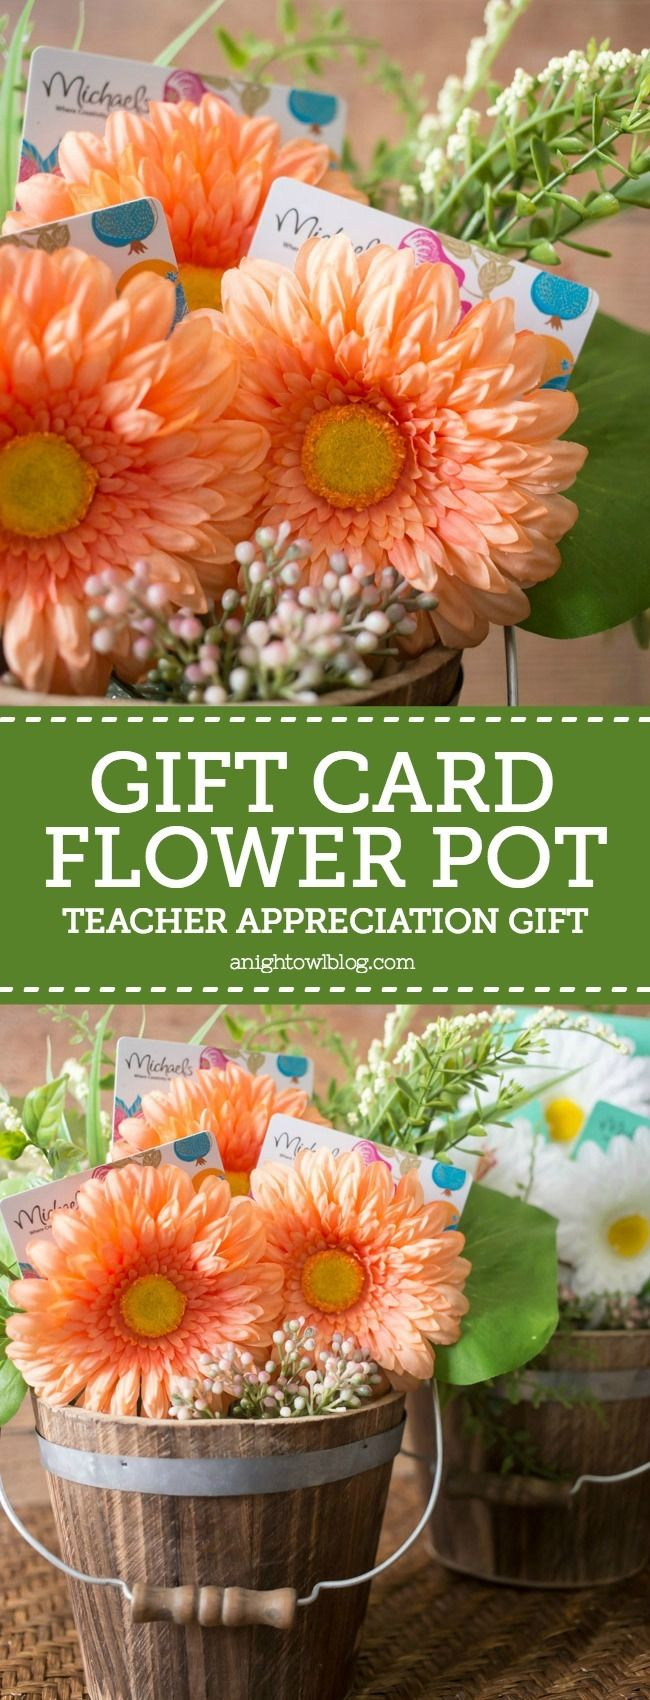 Looking for inspiration for your teacher's gifts this year? Head to Michaels Stores to get everything you need to make these Gift Card Flower Pot Teacher Appreciation Gifts! MichaelsMakers A Night Owl Blog